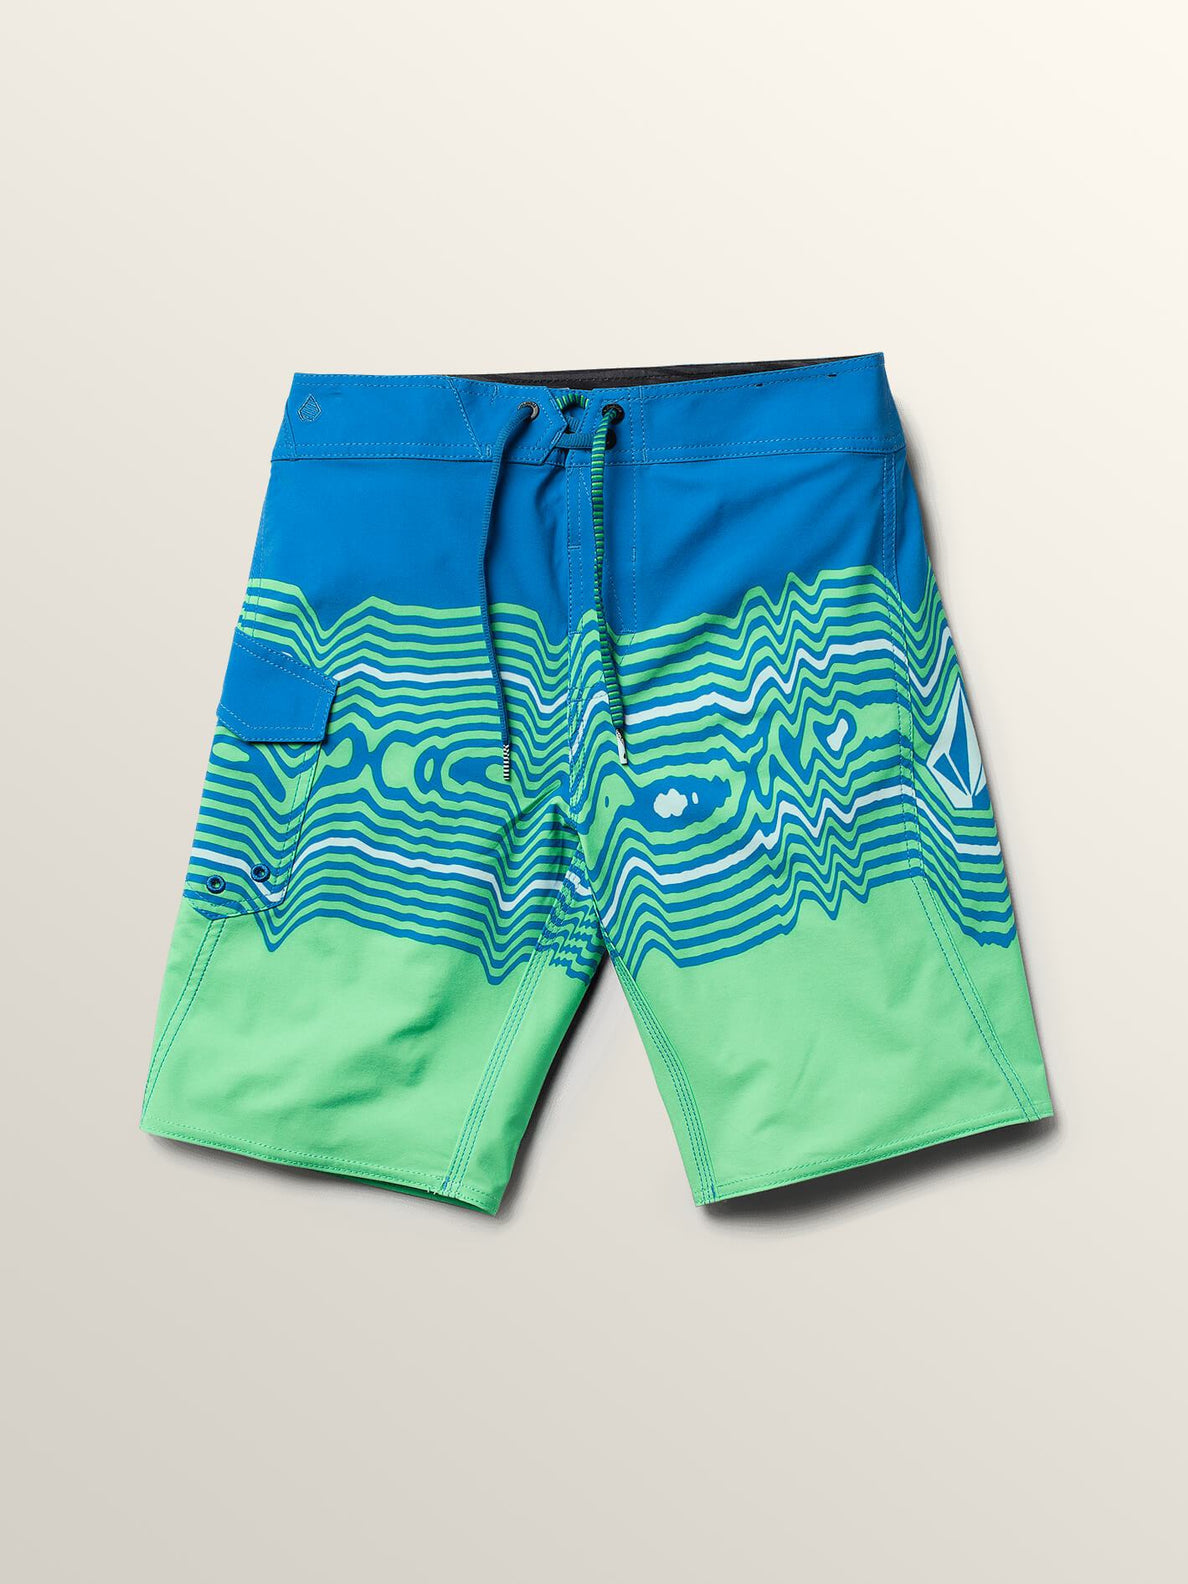 c82ff30bdd57b Big Boys Lido Vibes Mod Boardshorts In Free Blue, ...